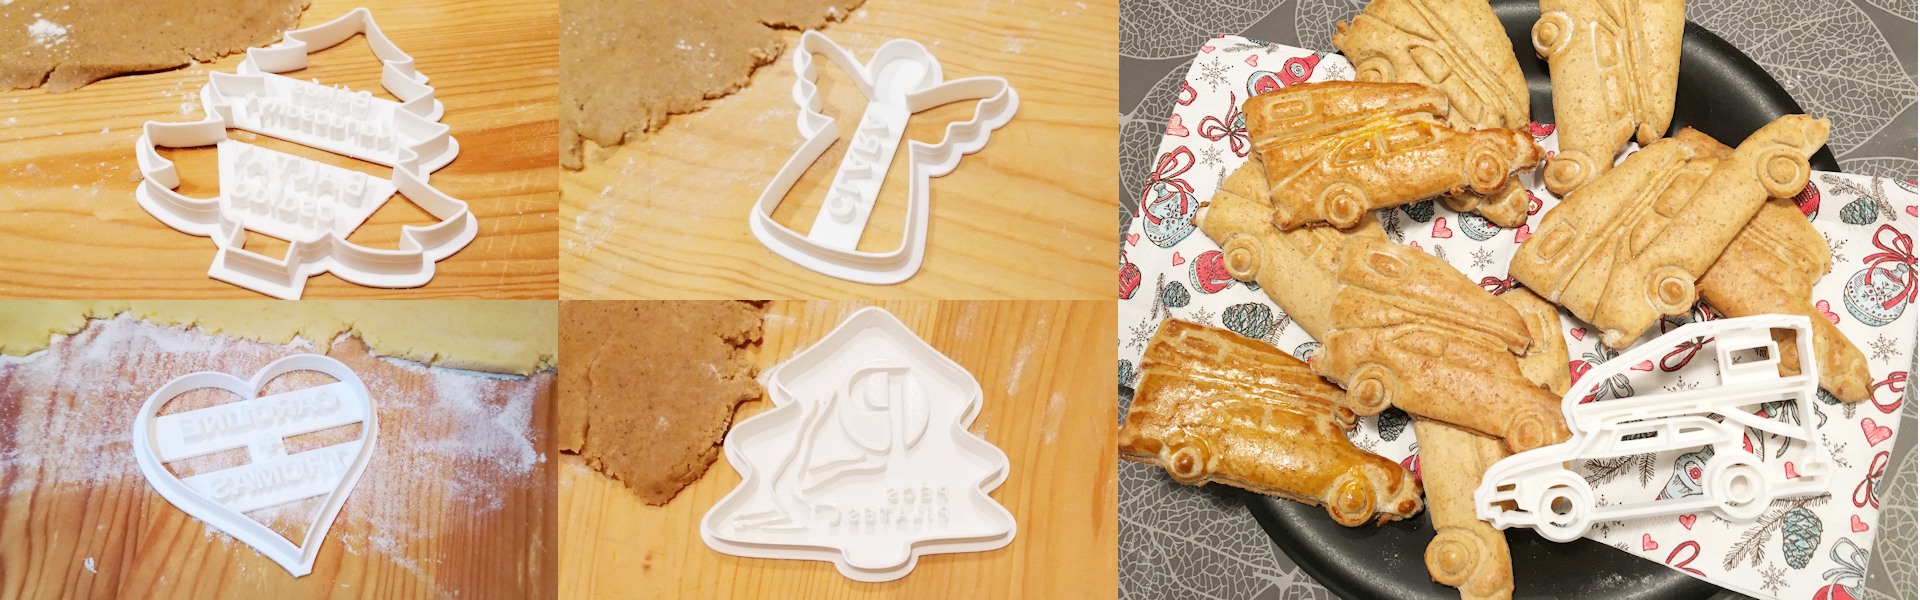 Custom Cookie Cutters Manufacturing